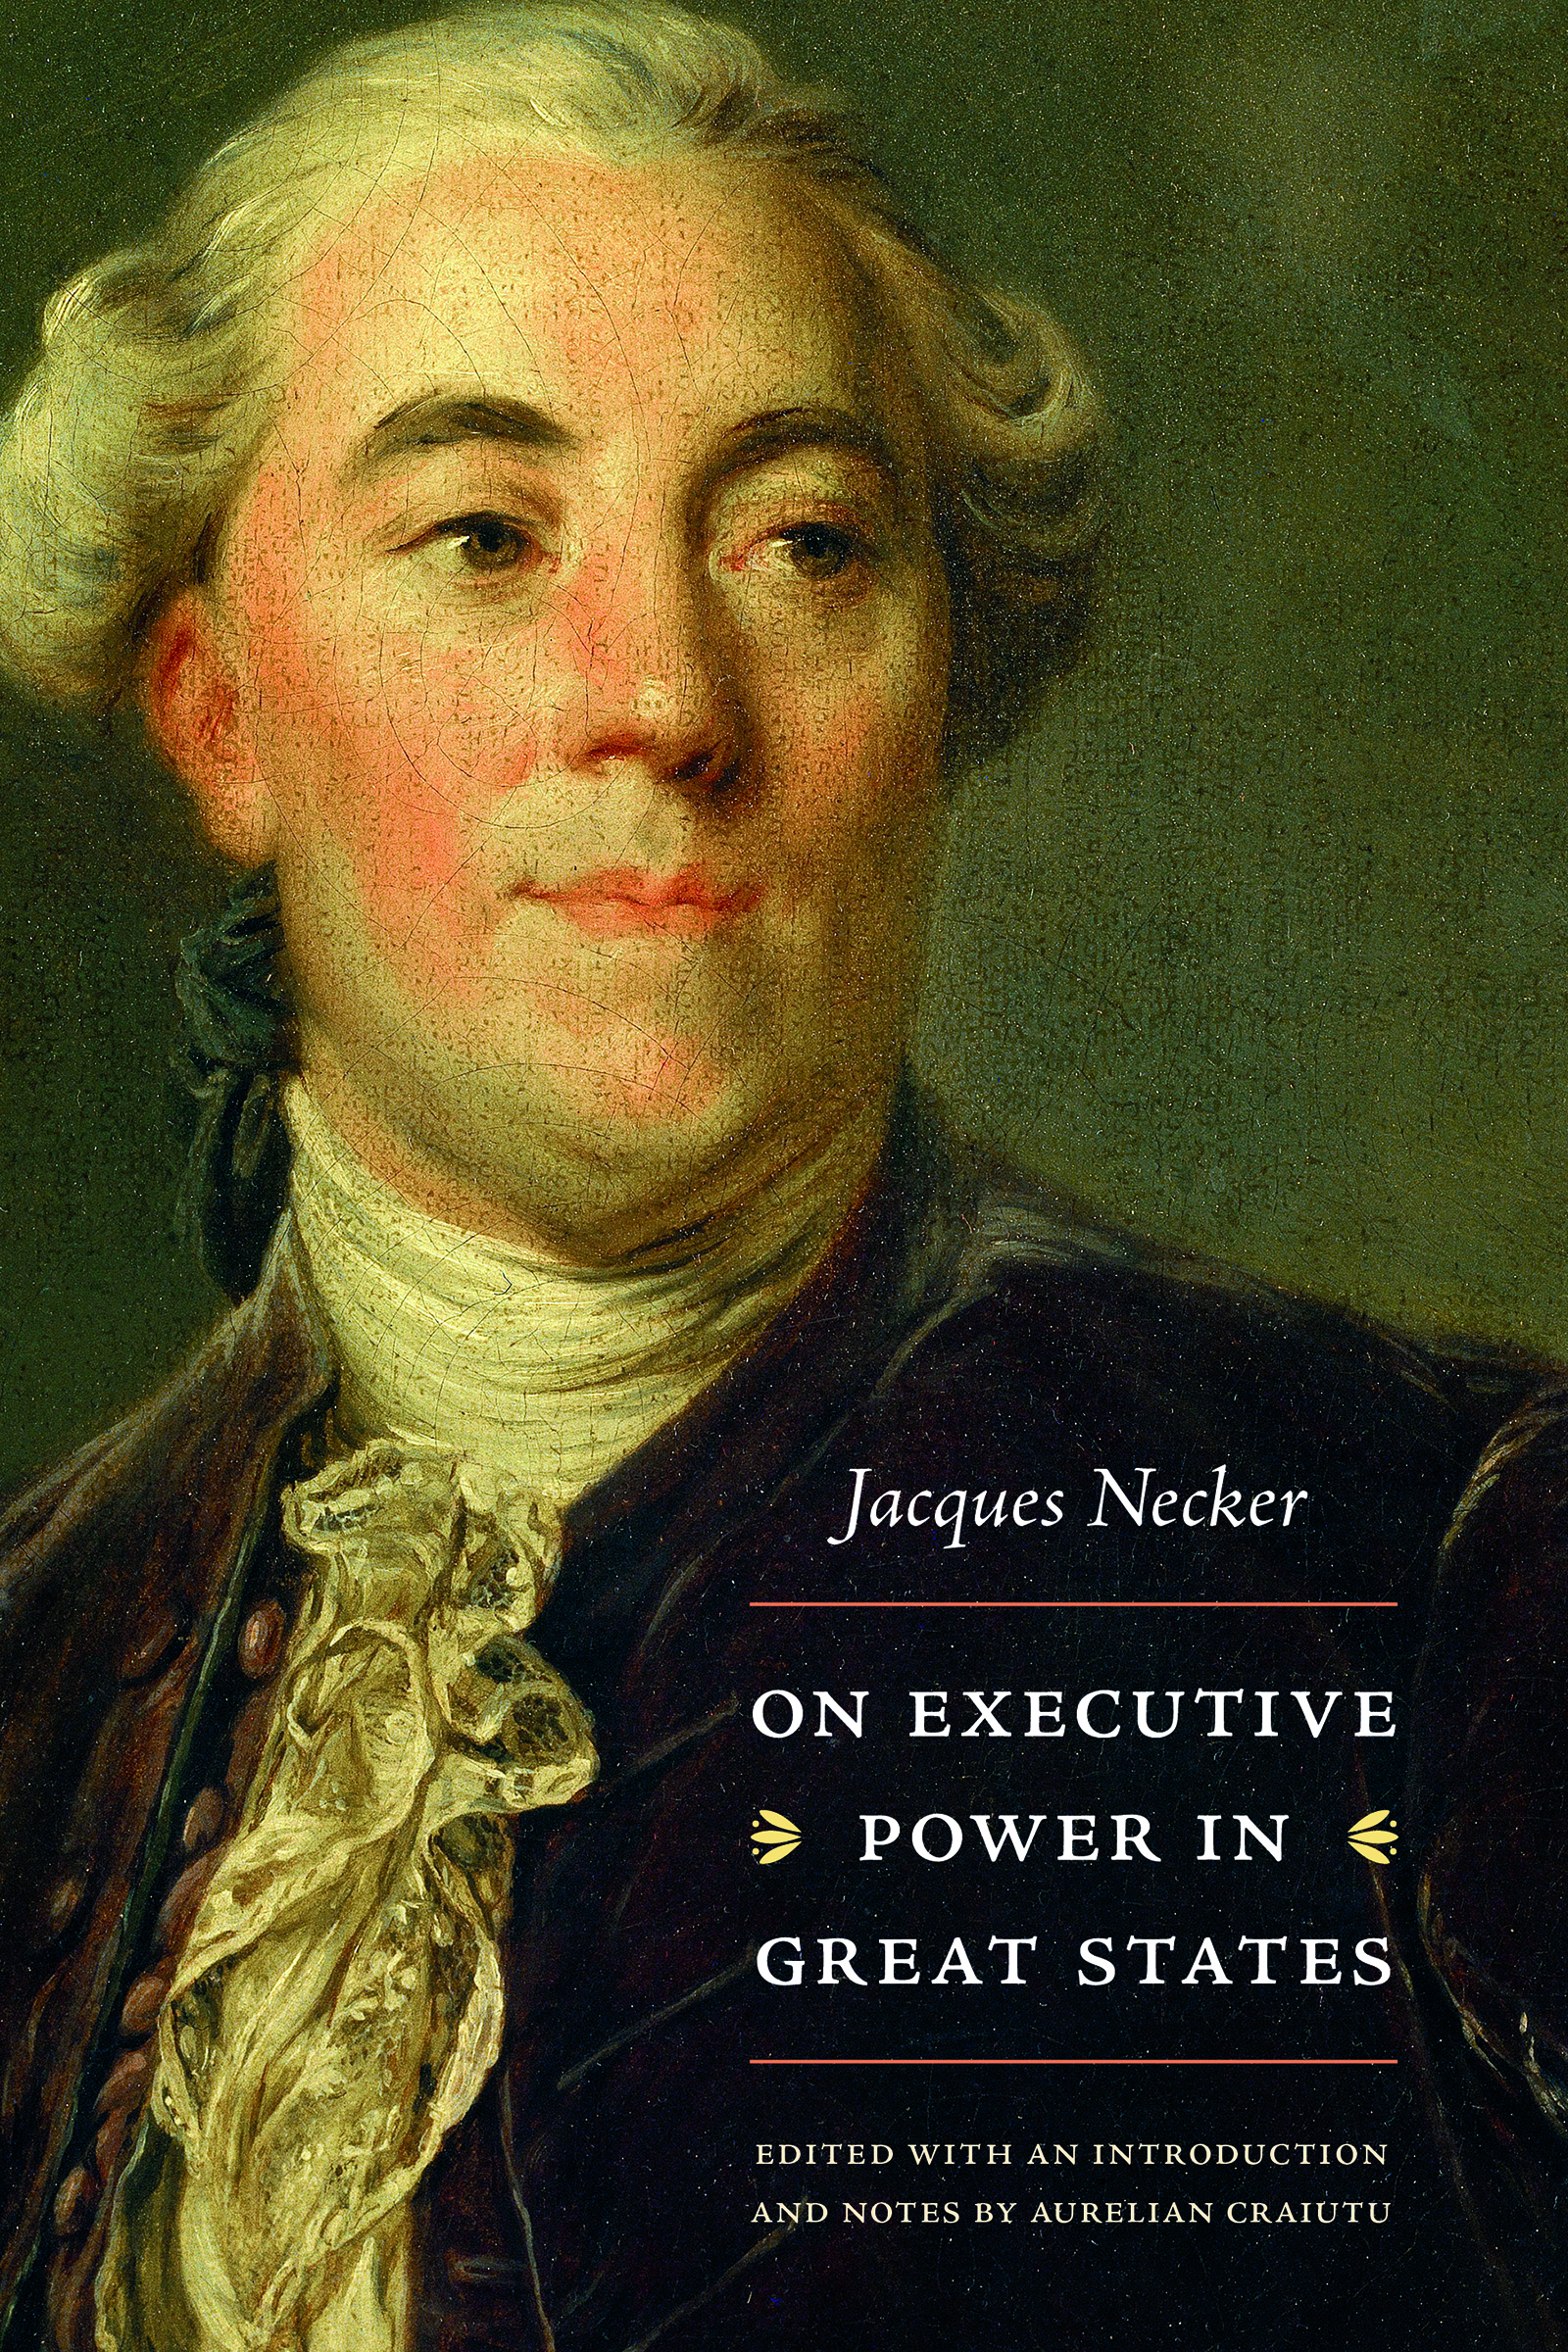 On Executive Power in Great States